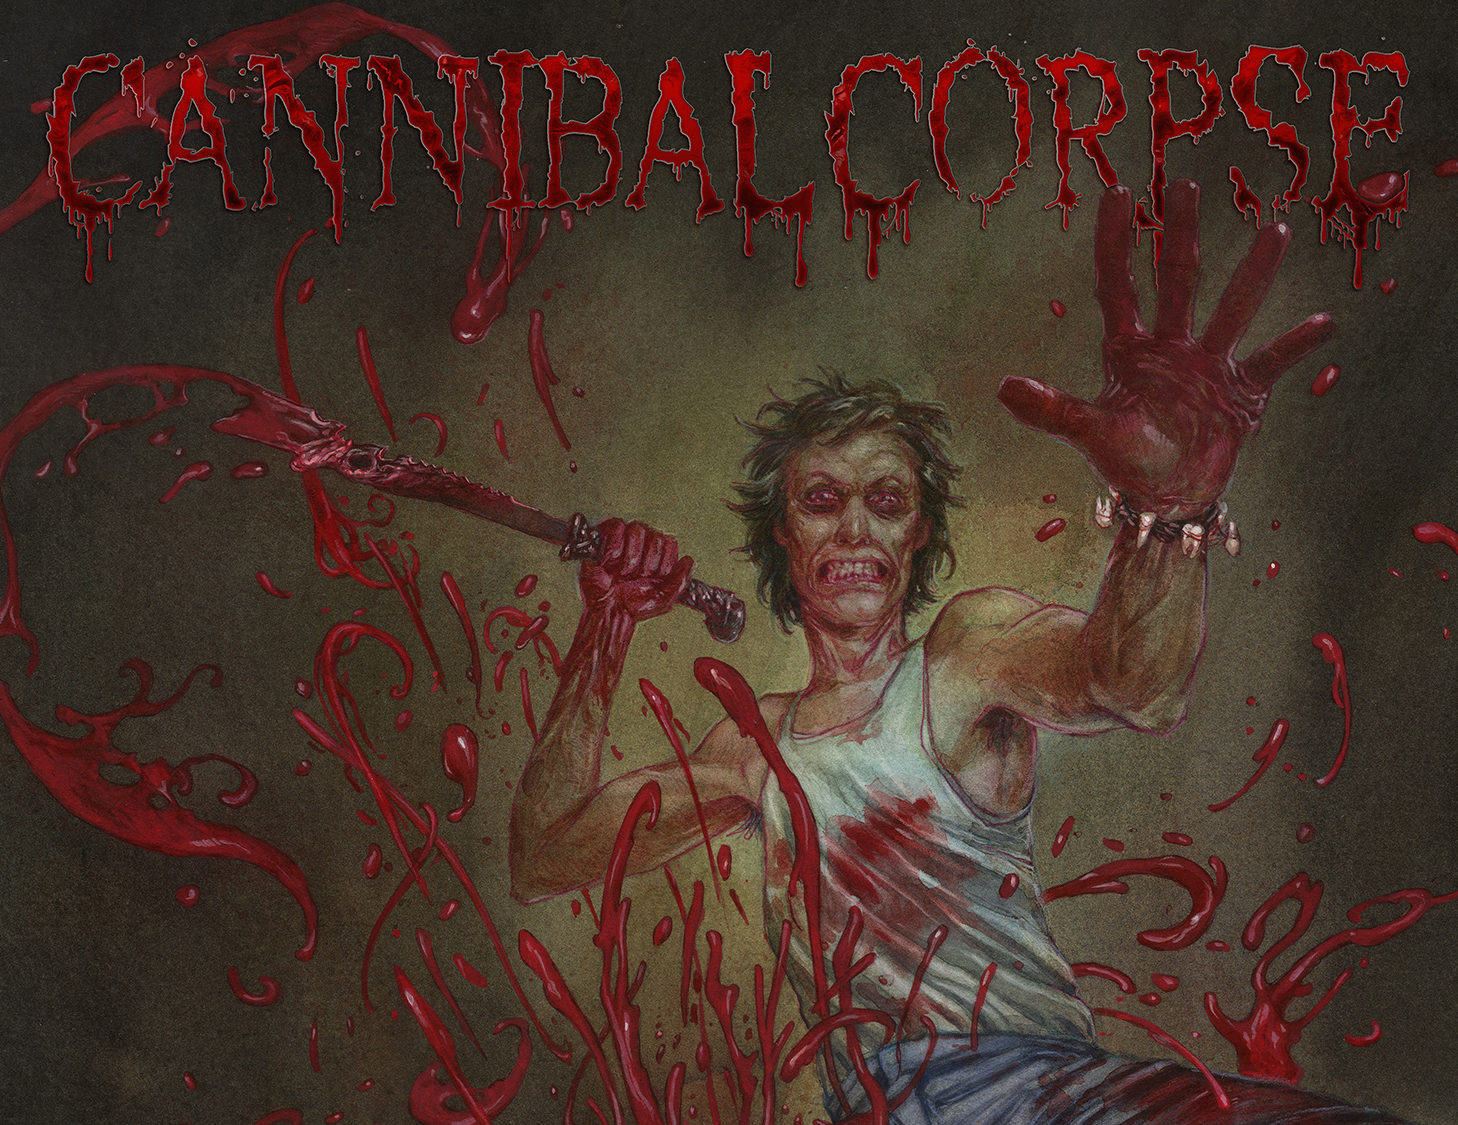 Cannibal Corpse Tour Dates